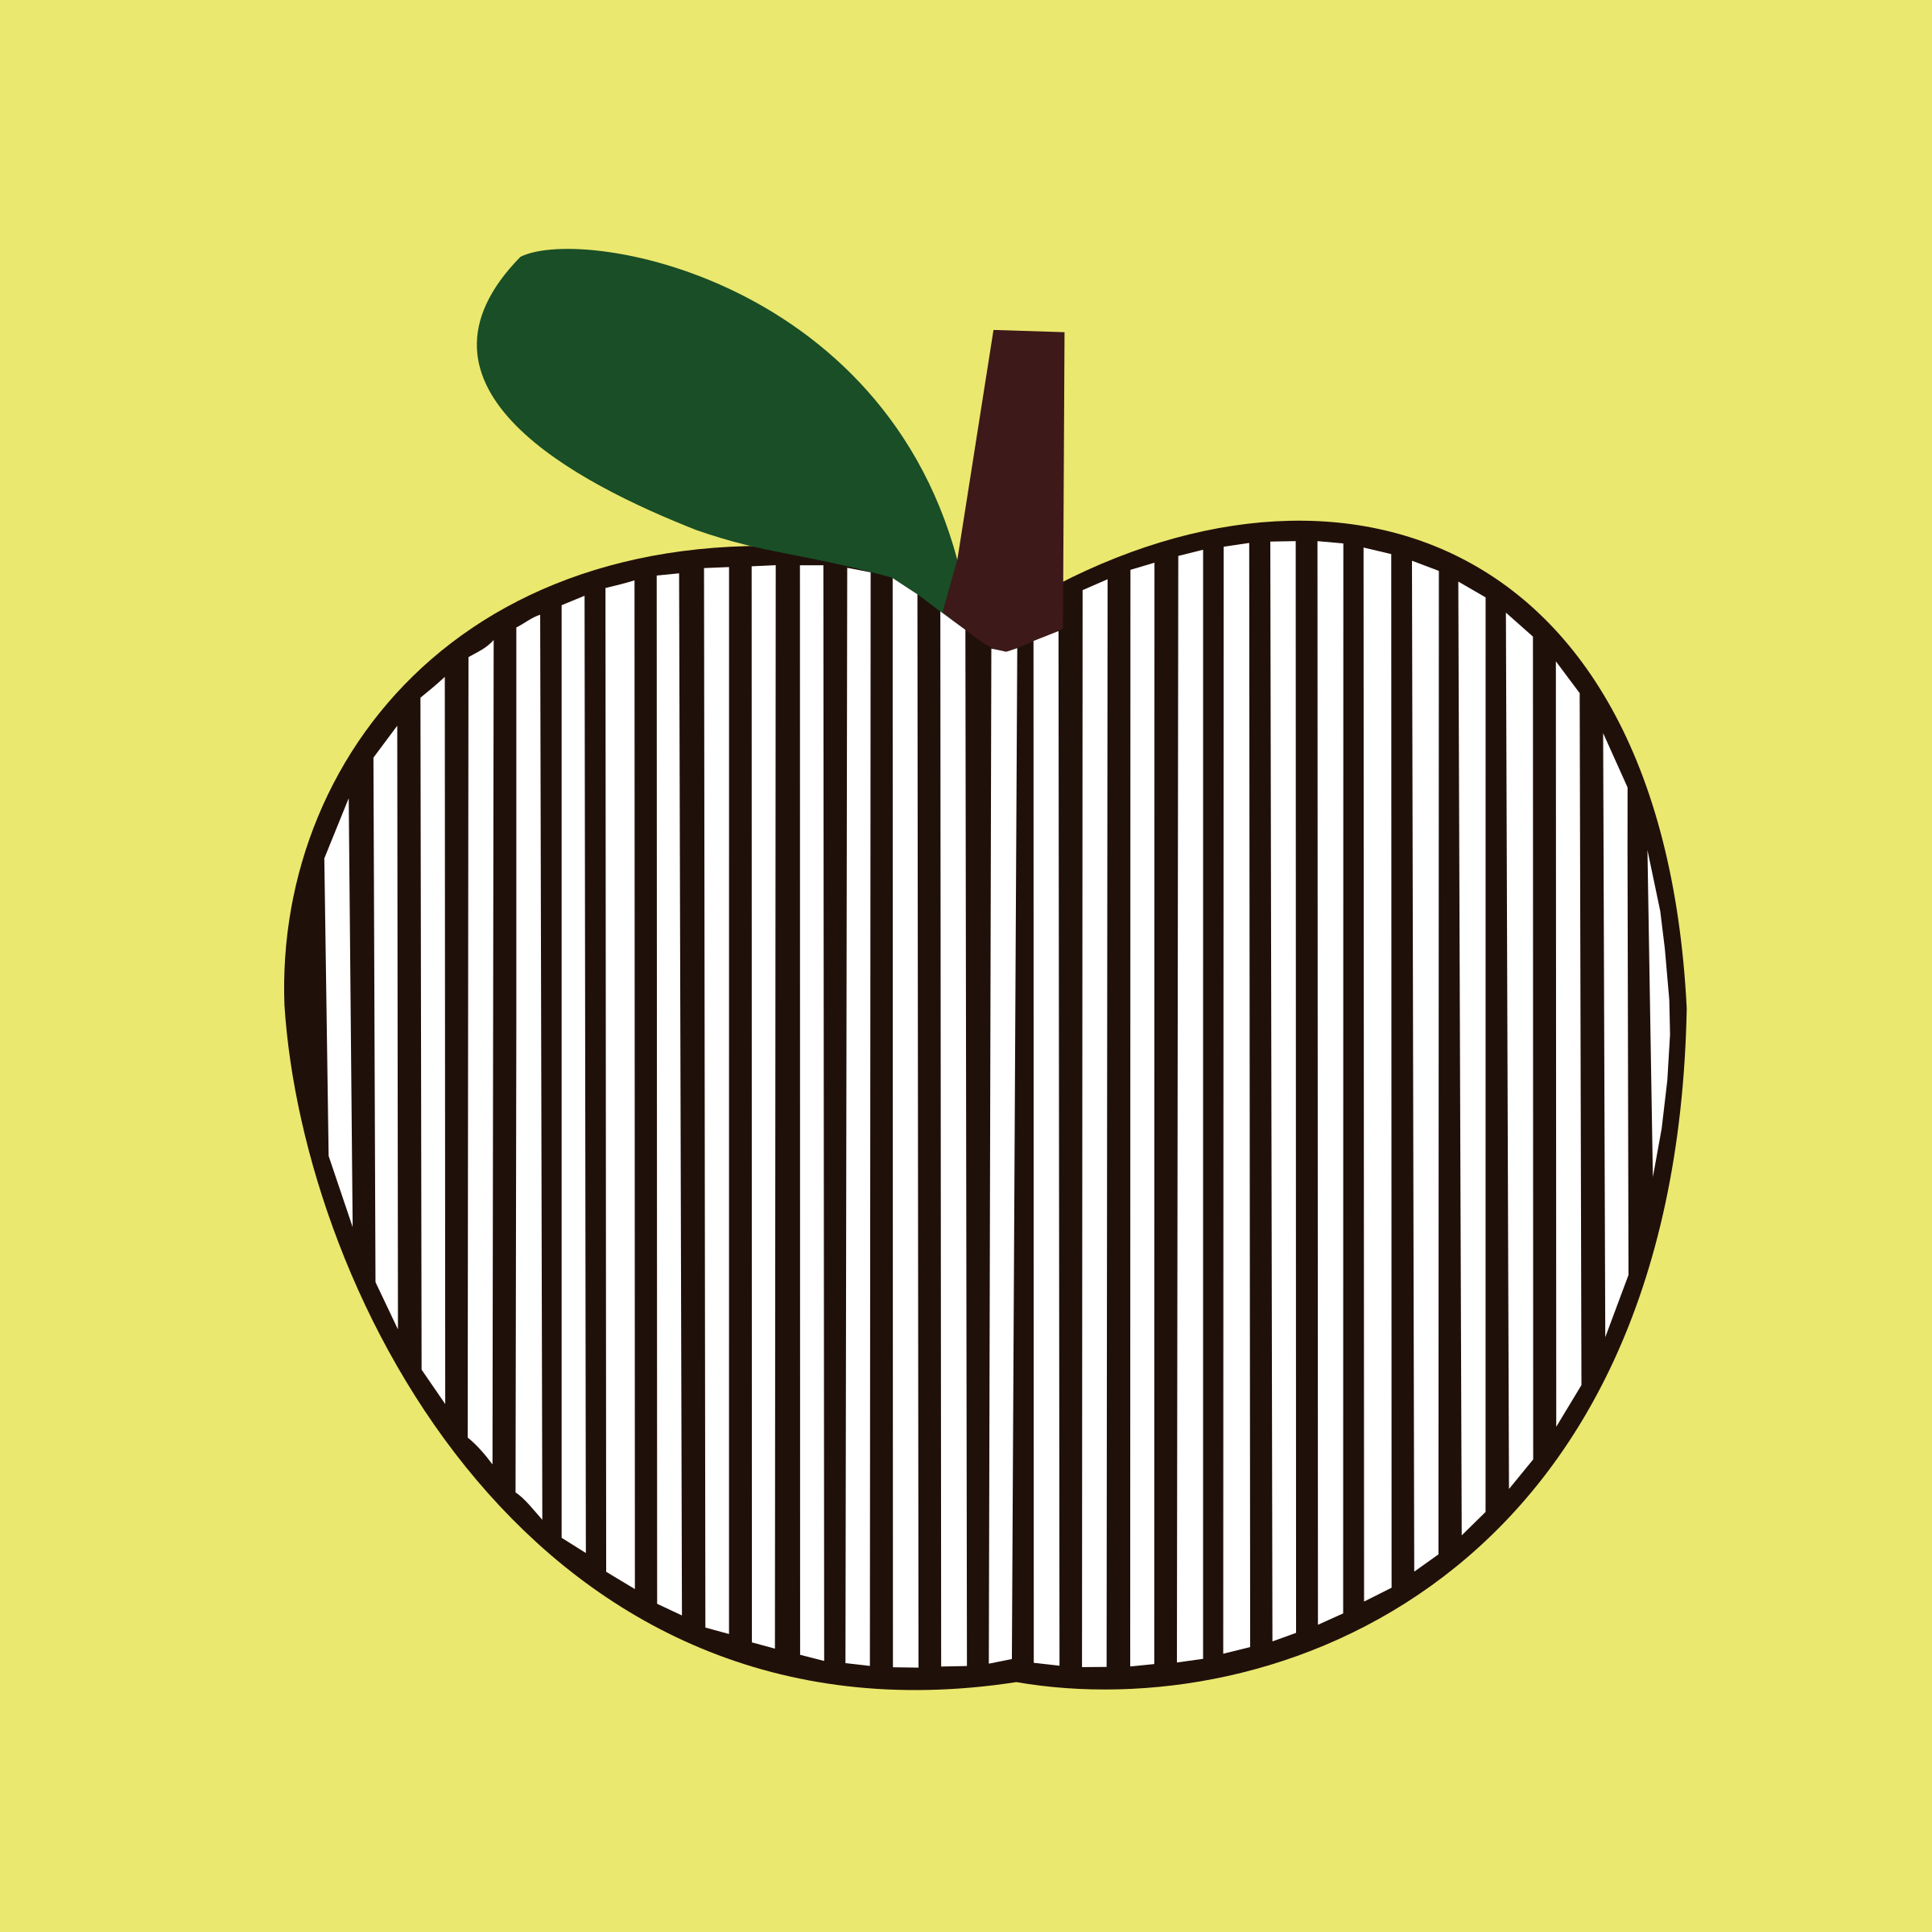 Clipart - apple striped